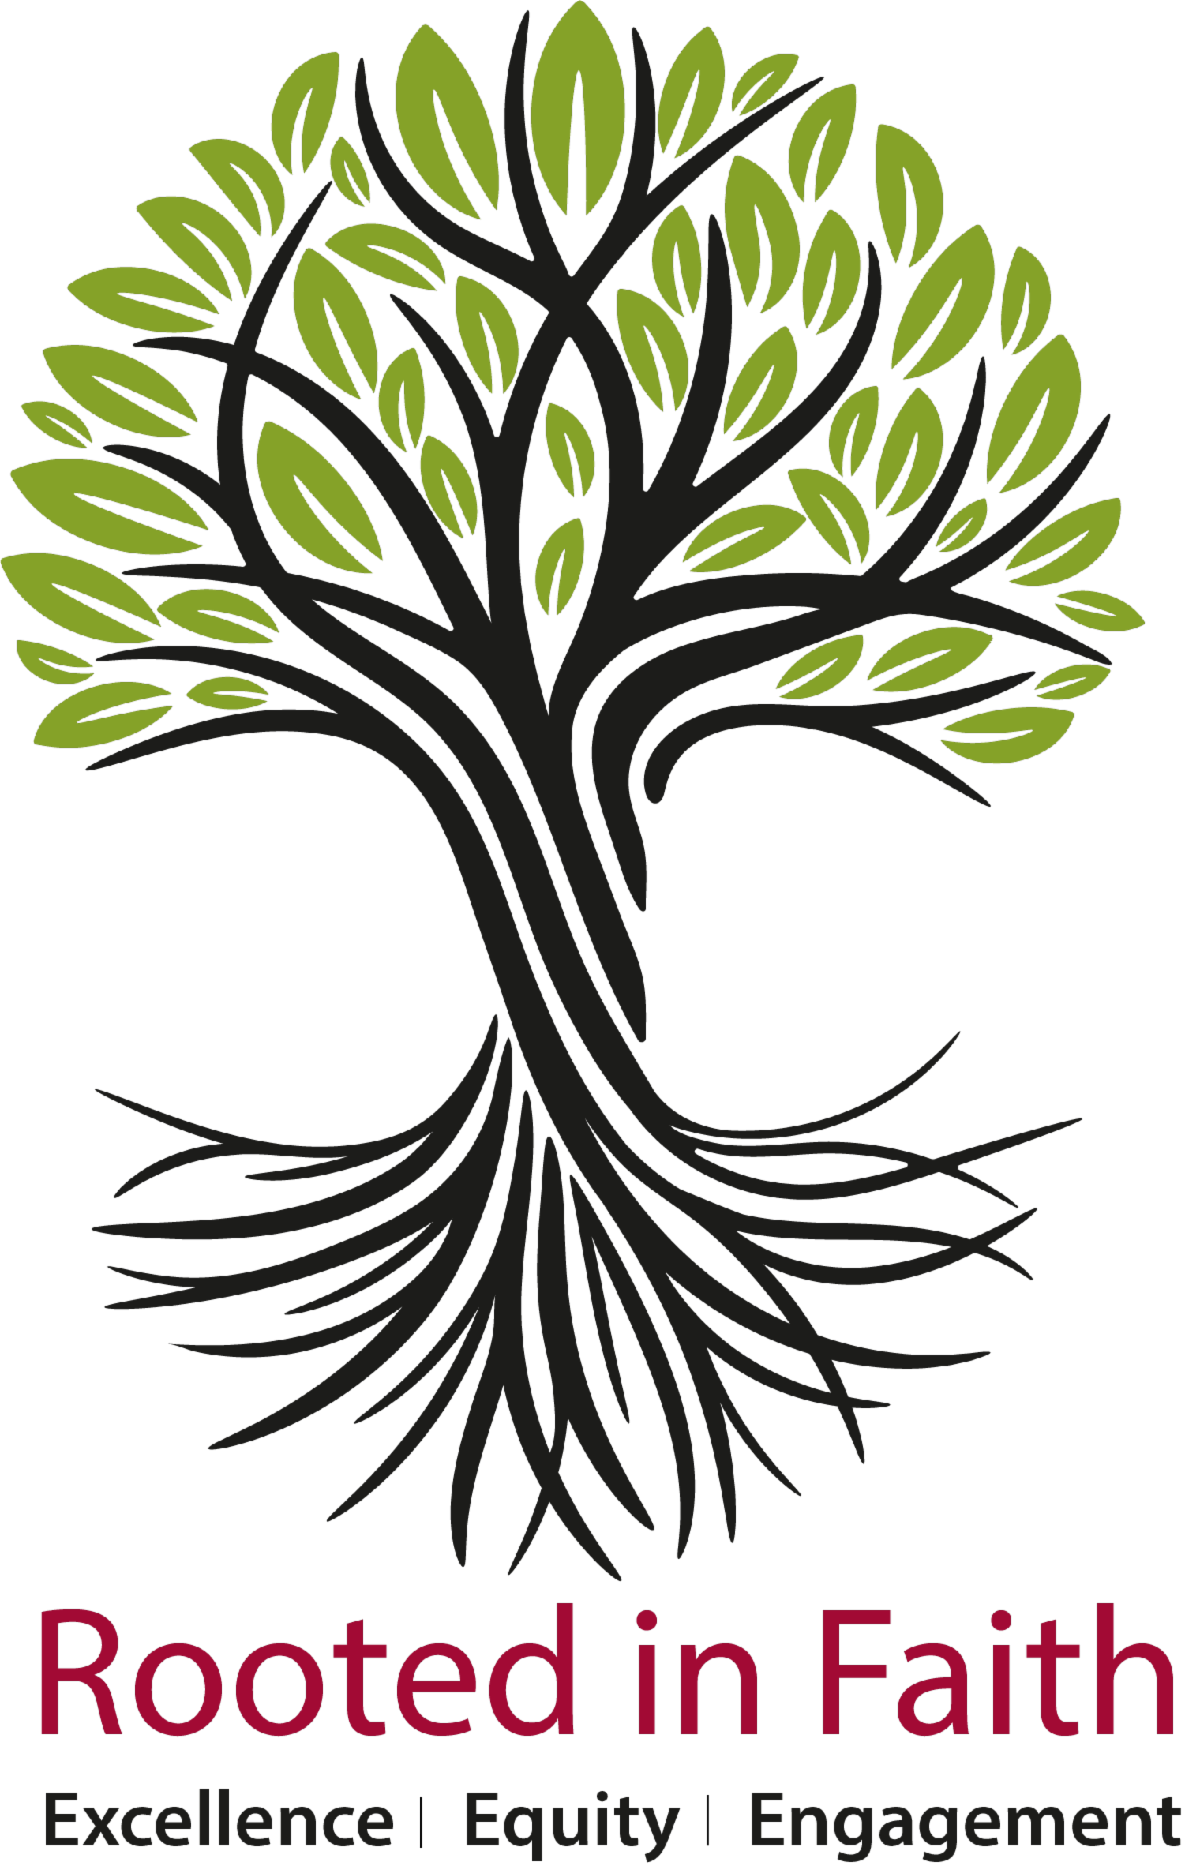 Rooted in Faith logo Excellence, Equity and Engagement